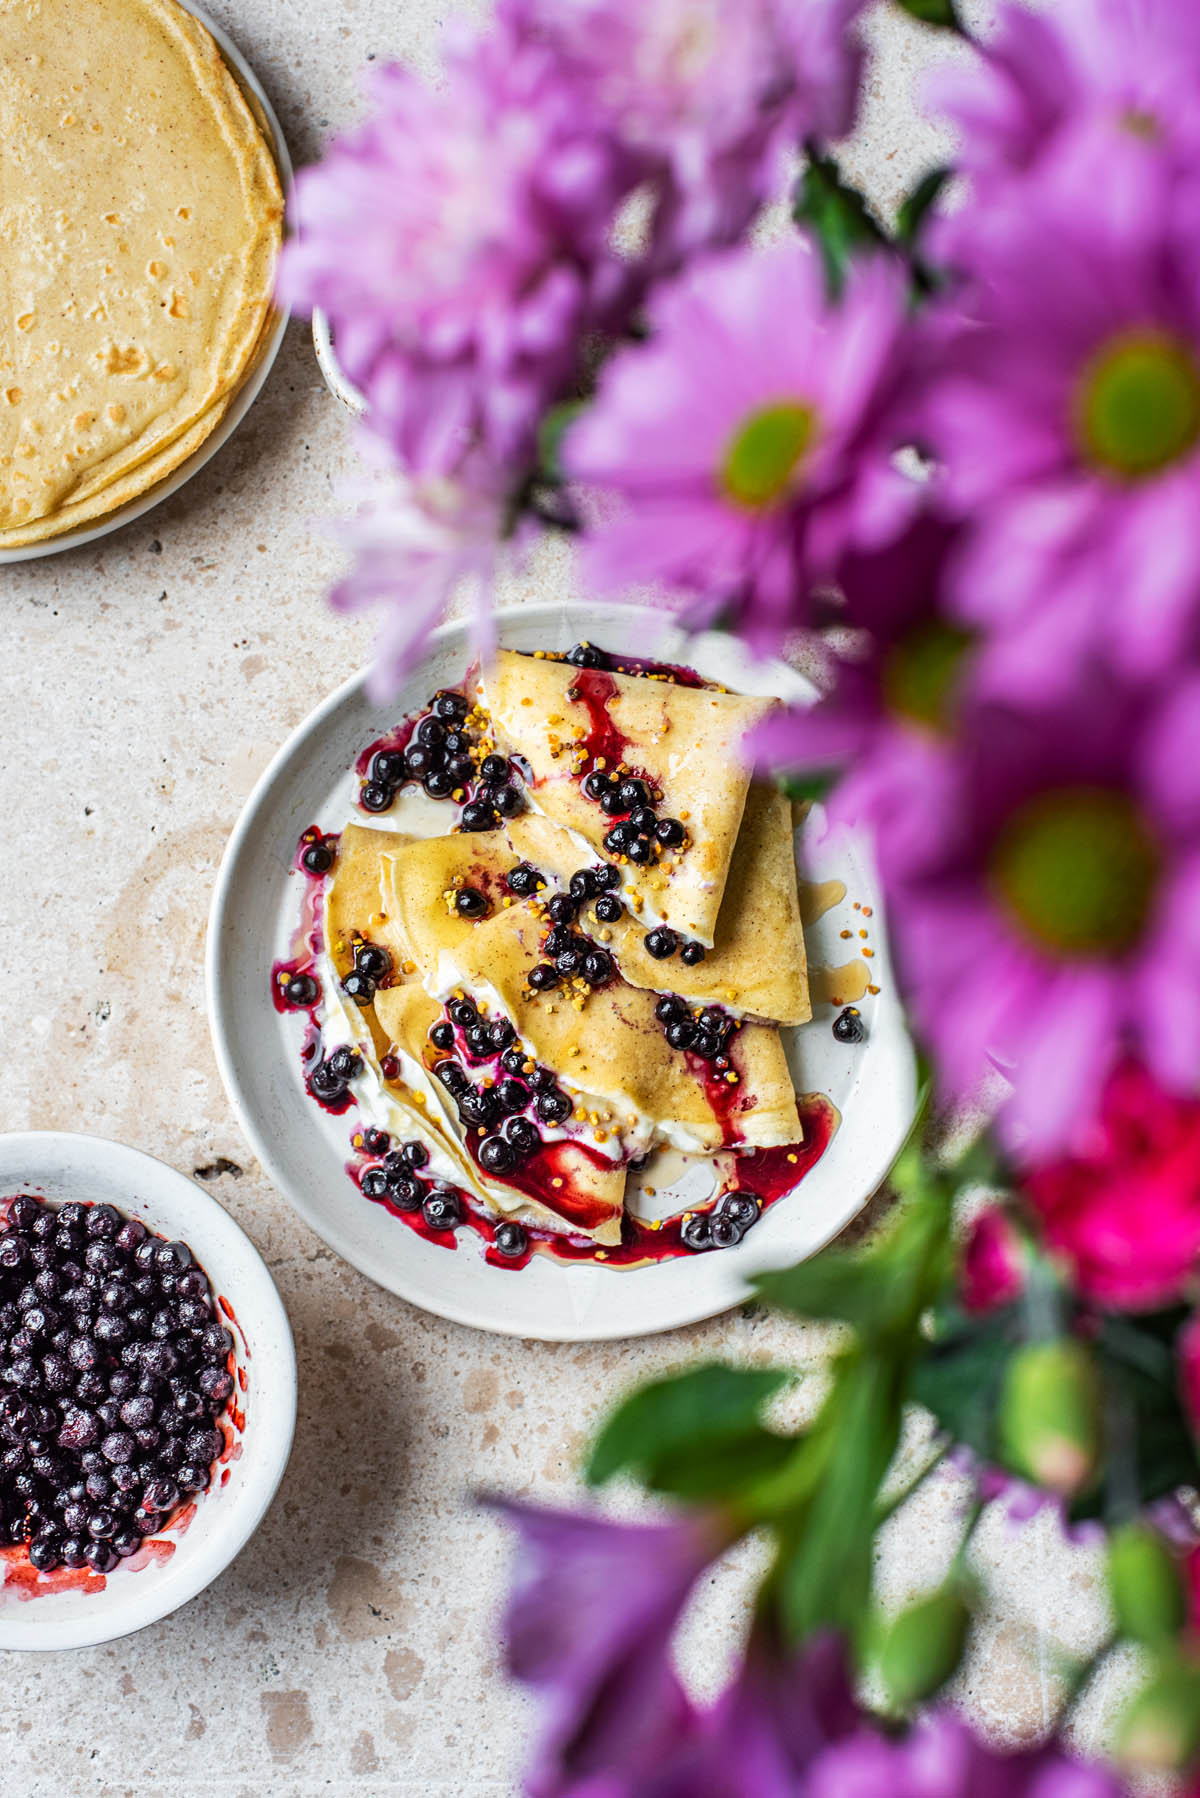 Overhead shot of crepes with flowers.